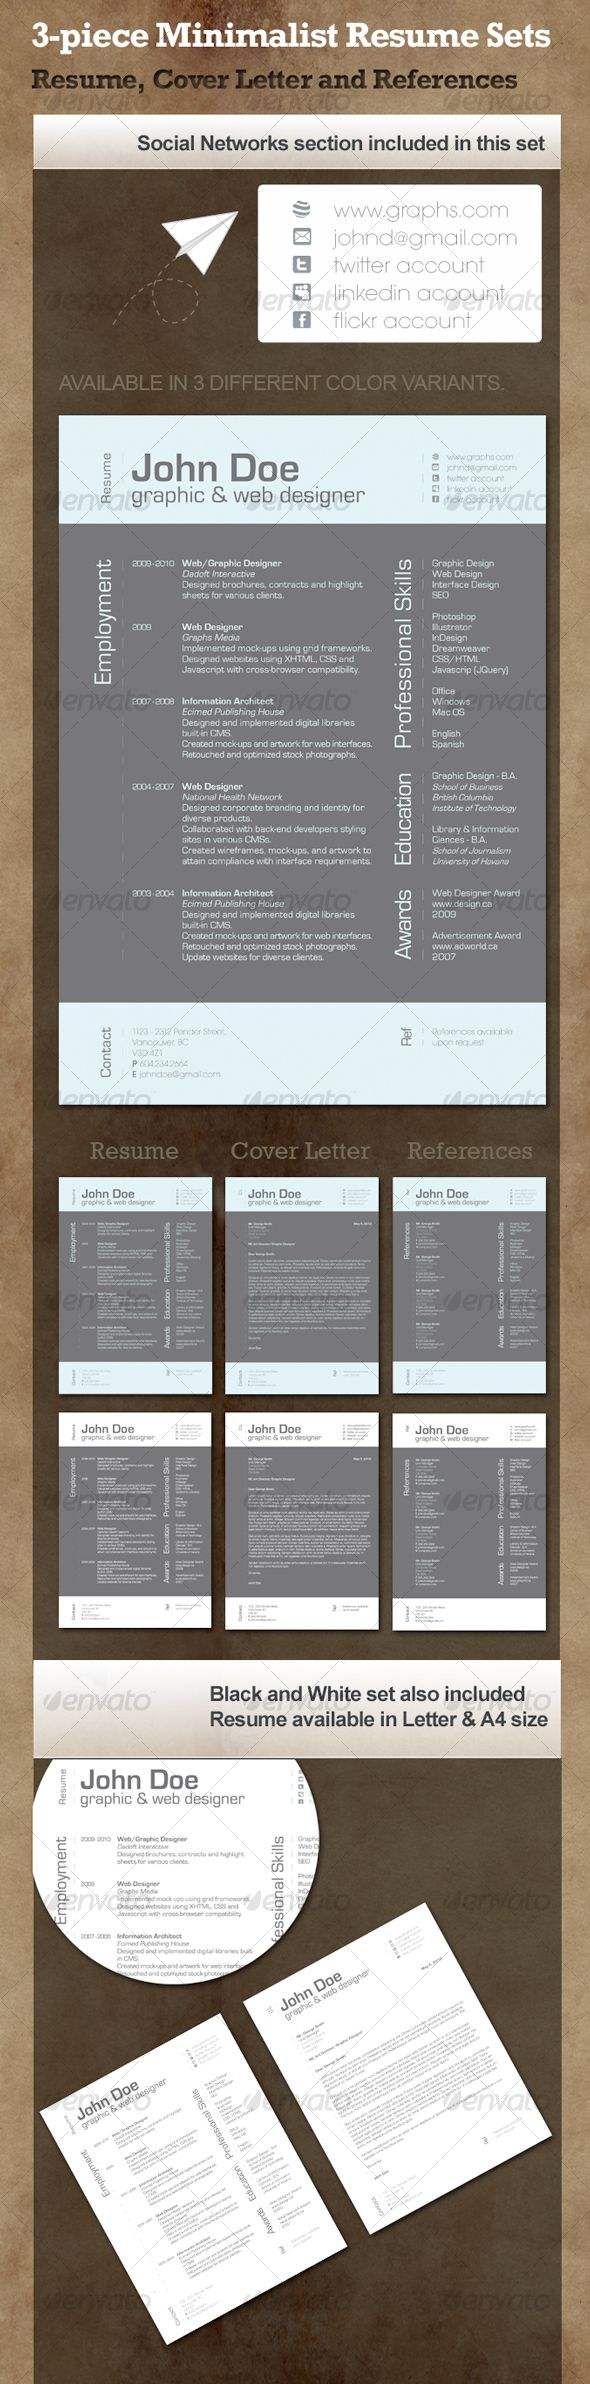 resume 19 best resume images on Pinterest